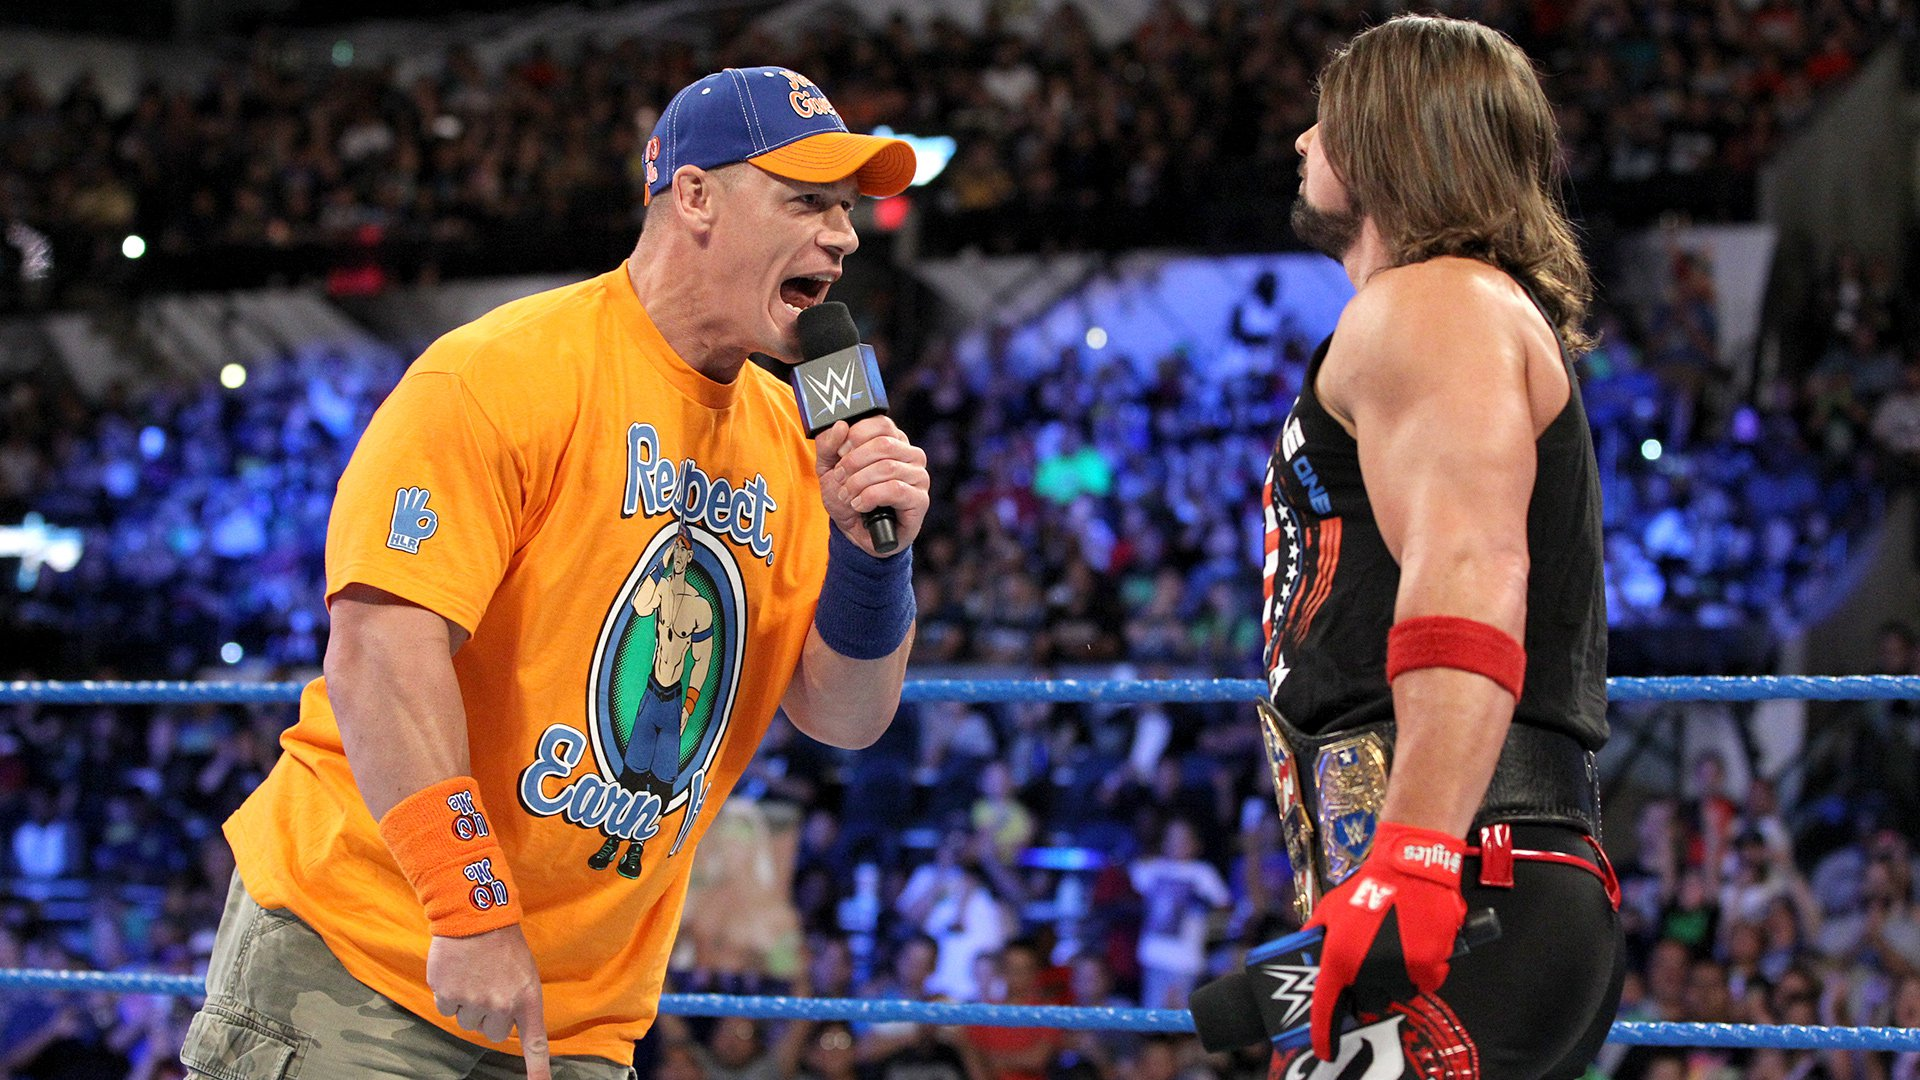 Cena challenges Styles for the title...